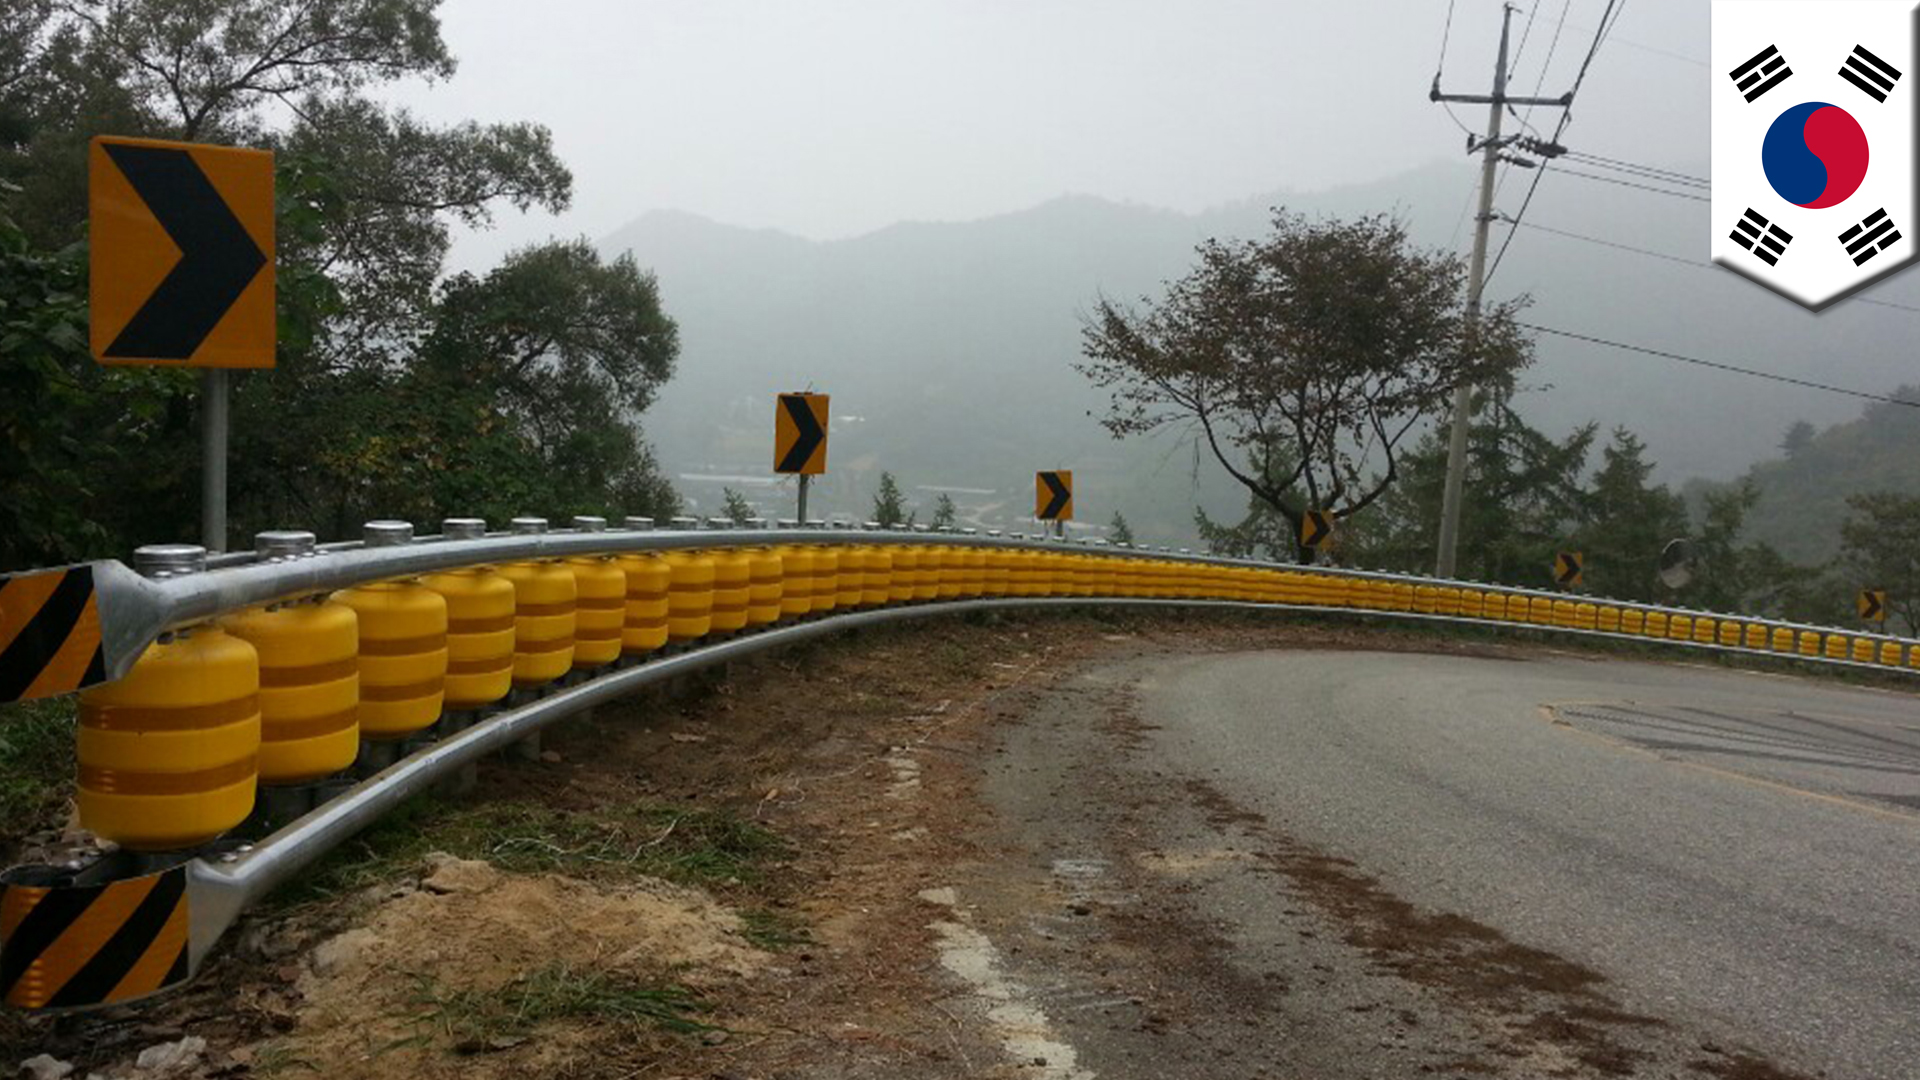 South Korea company designs rolling guardrail that could save lives in auto accidents